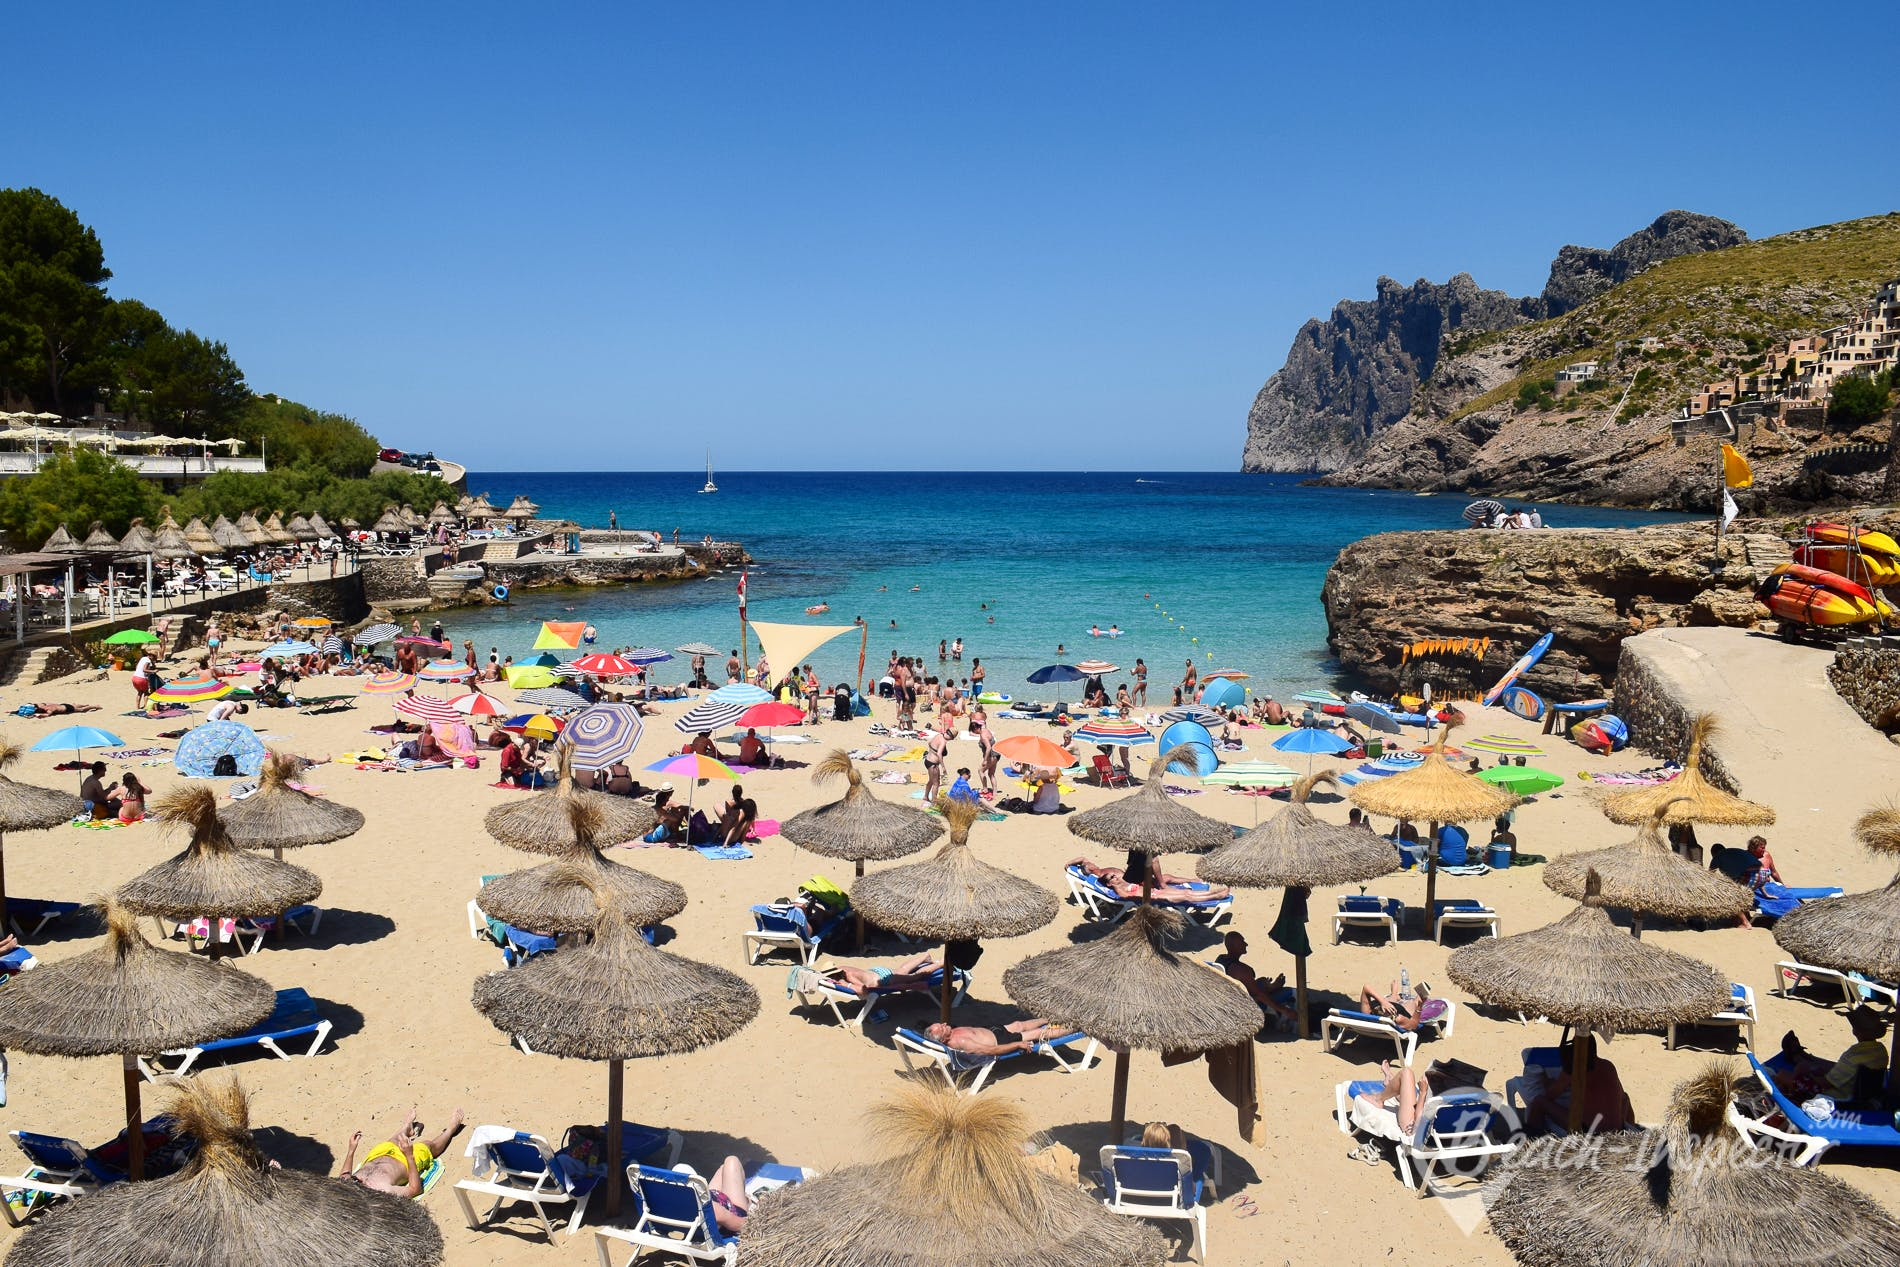 Beach Cala Molins, Majorca, Spain